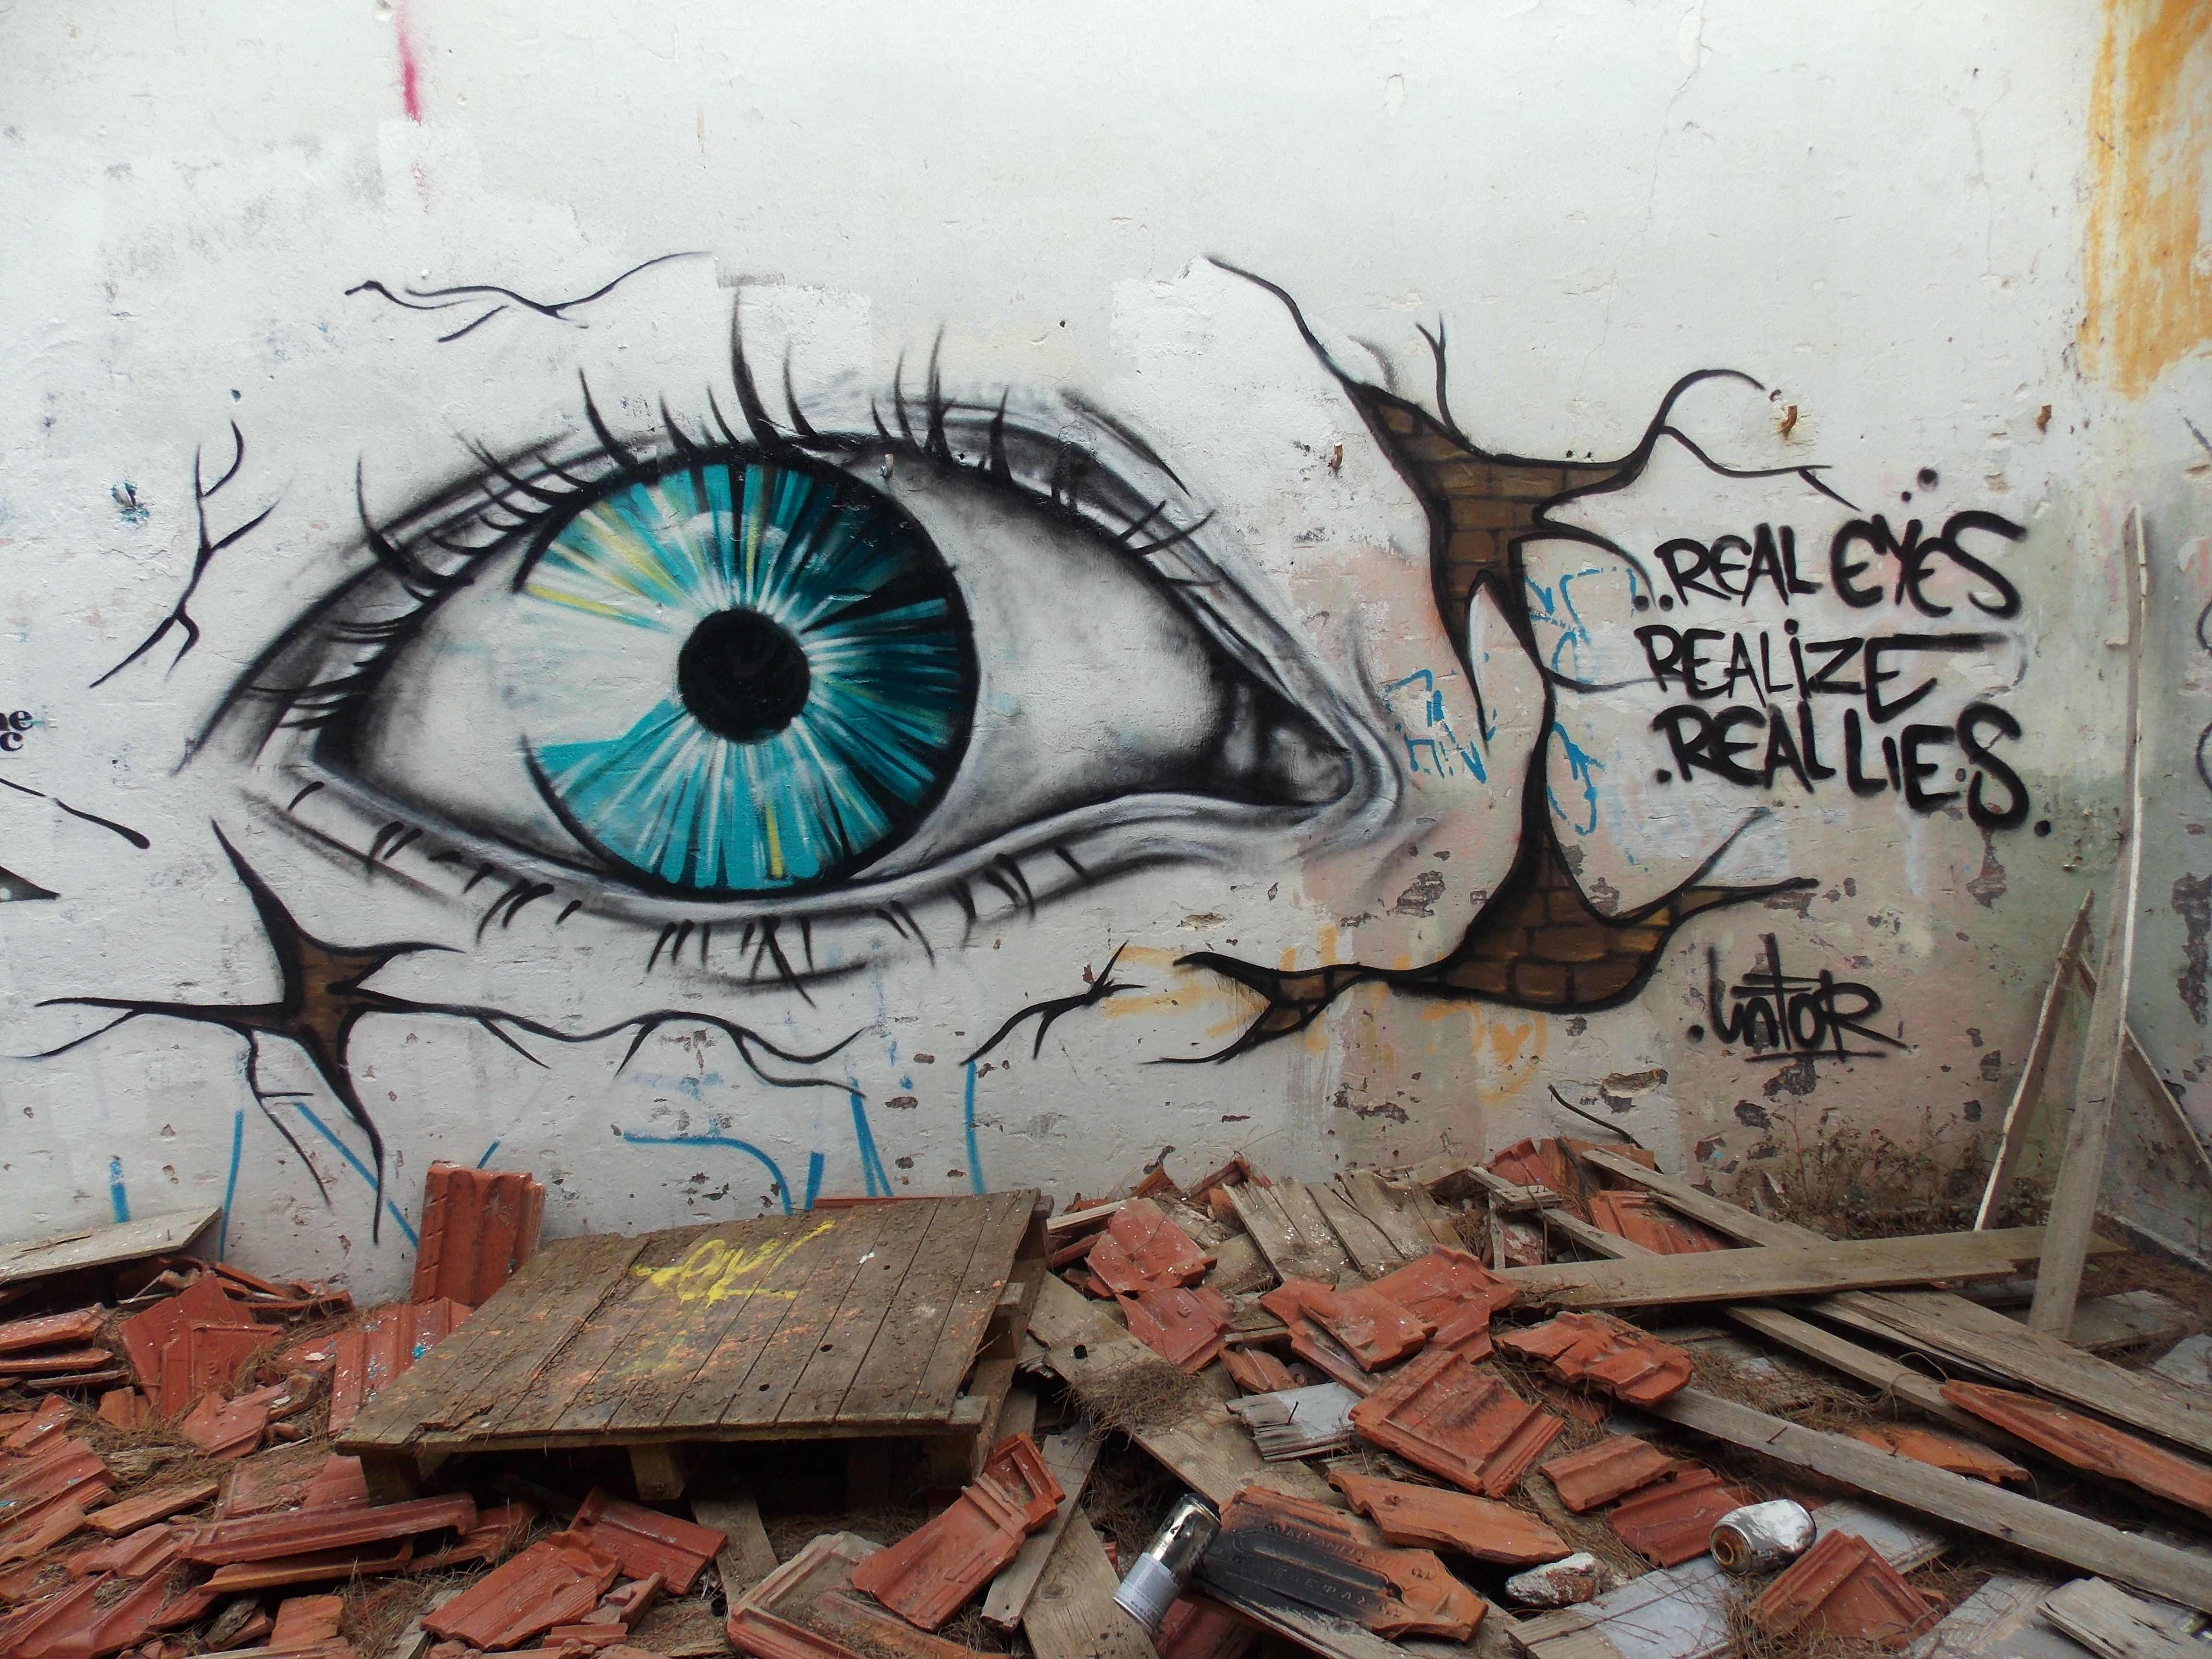 Graffiti art with meaning - Street Art Eyes Google